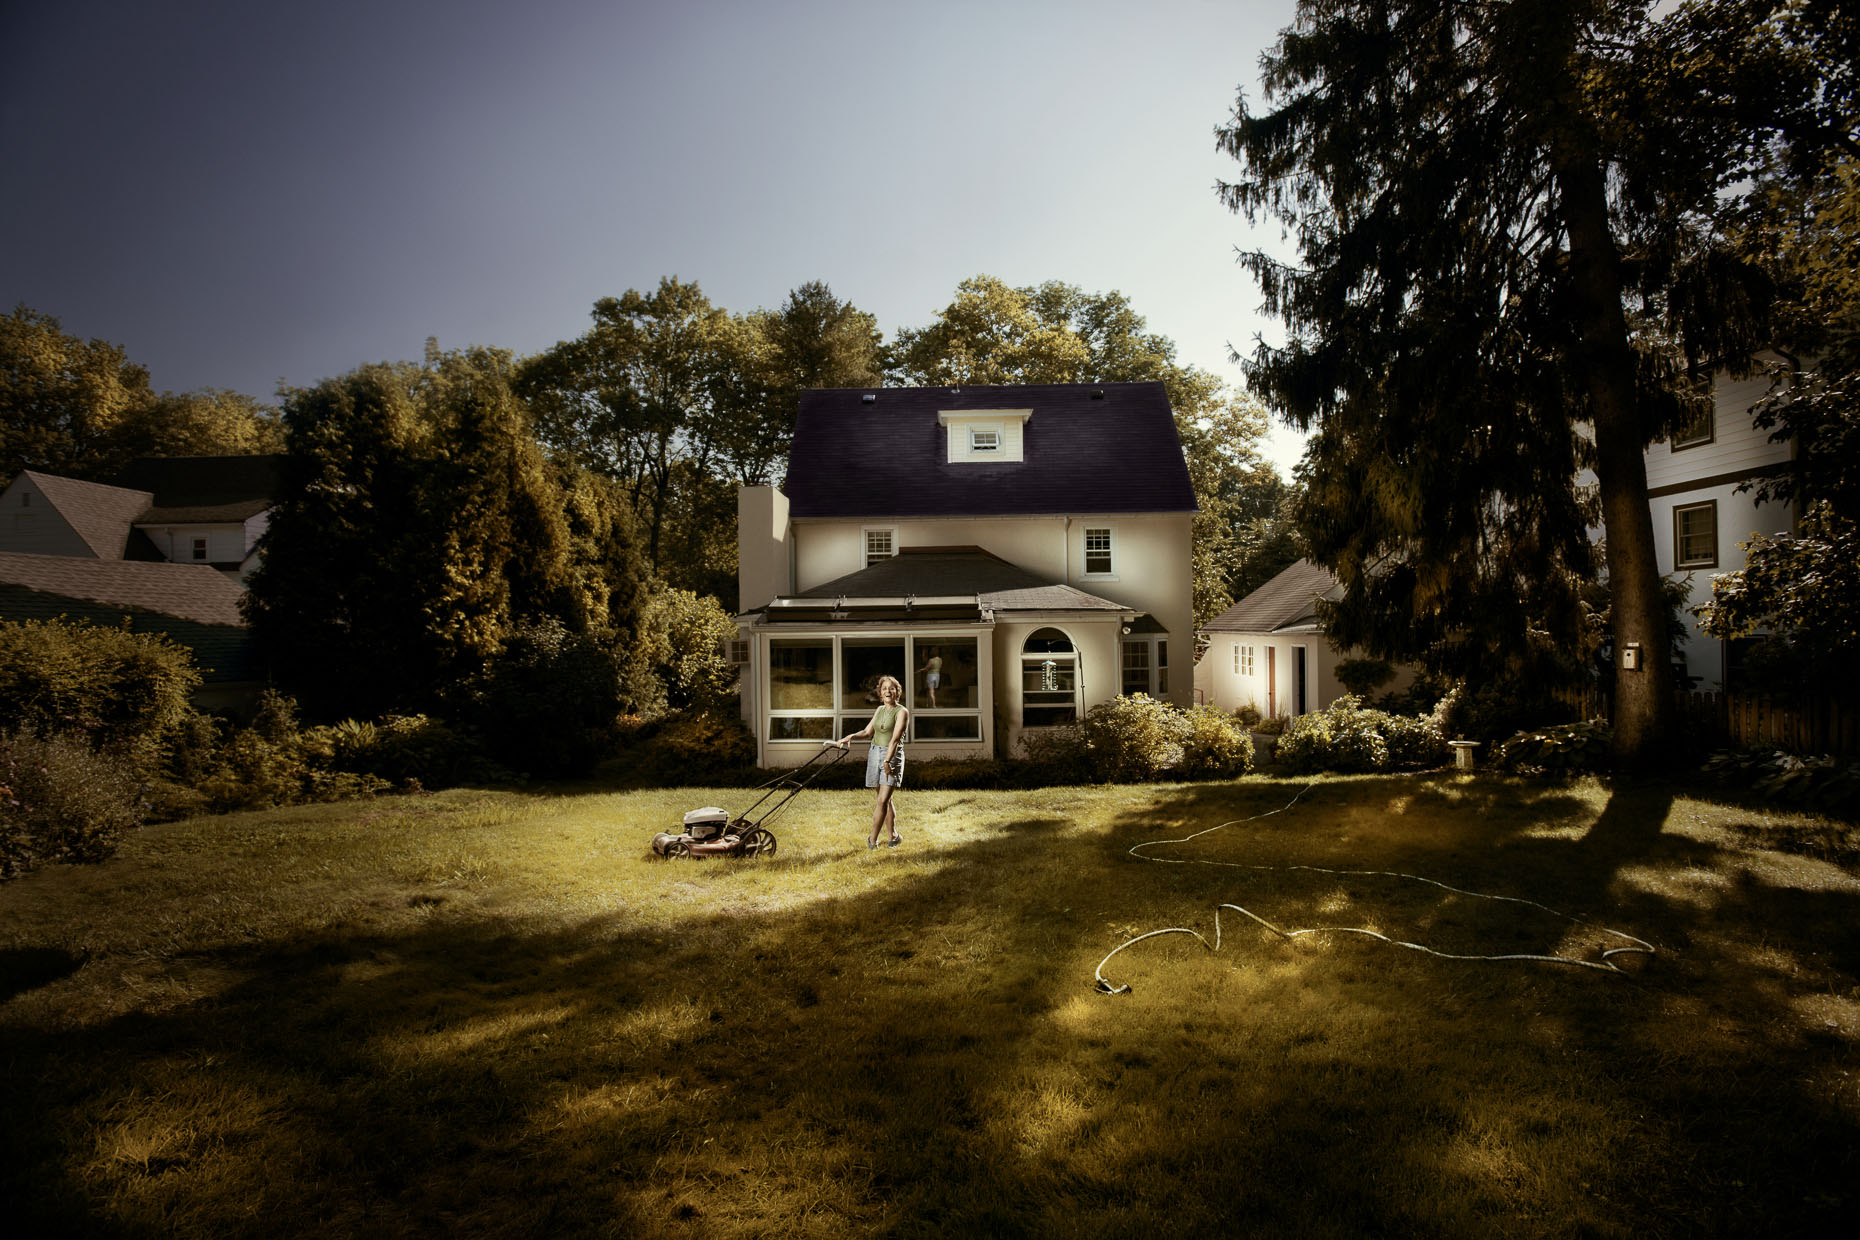 portraits-project-housewife-woman-lawn-mower-yard